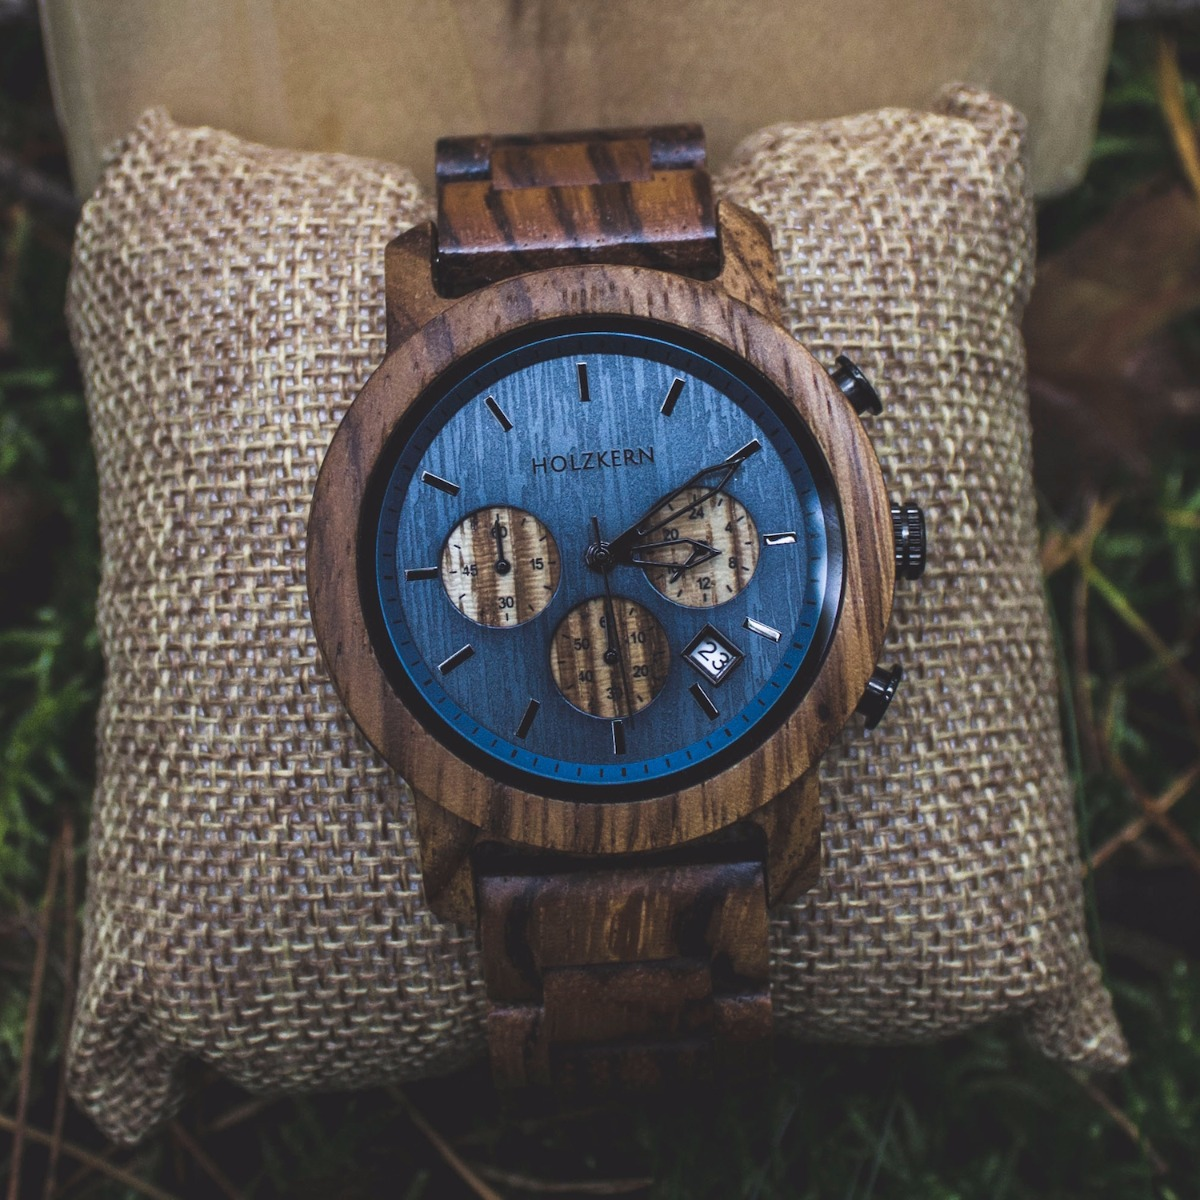 Wooden watch named Mountainlake made by Holzkern on a jewellery cushion